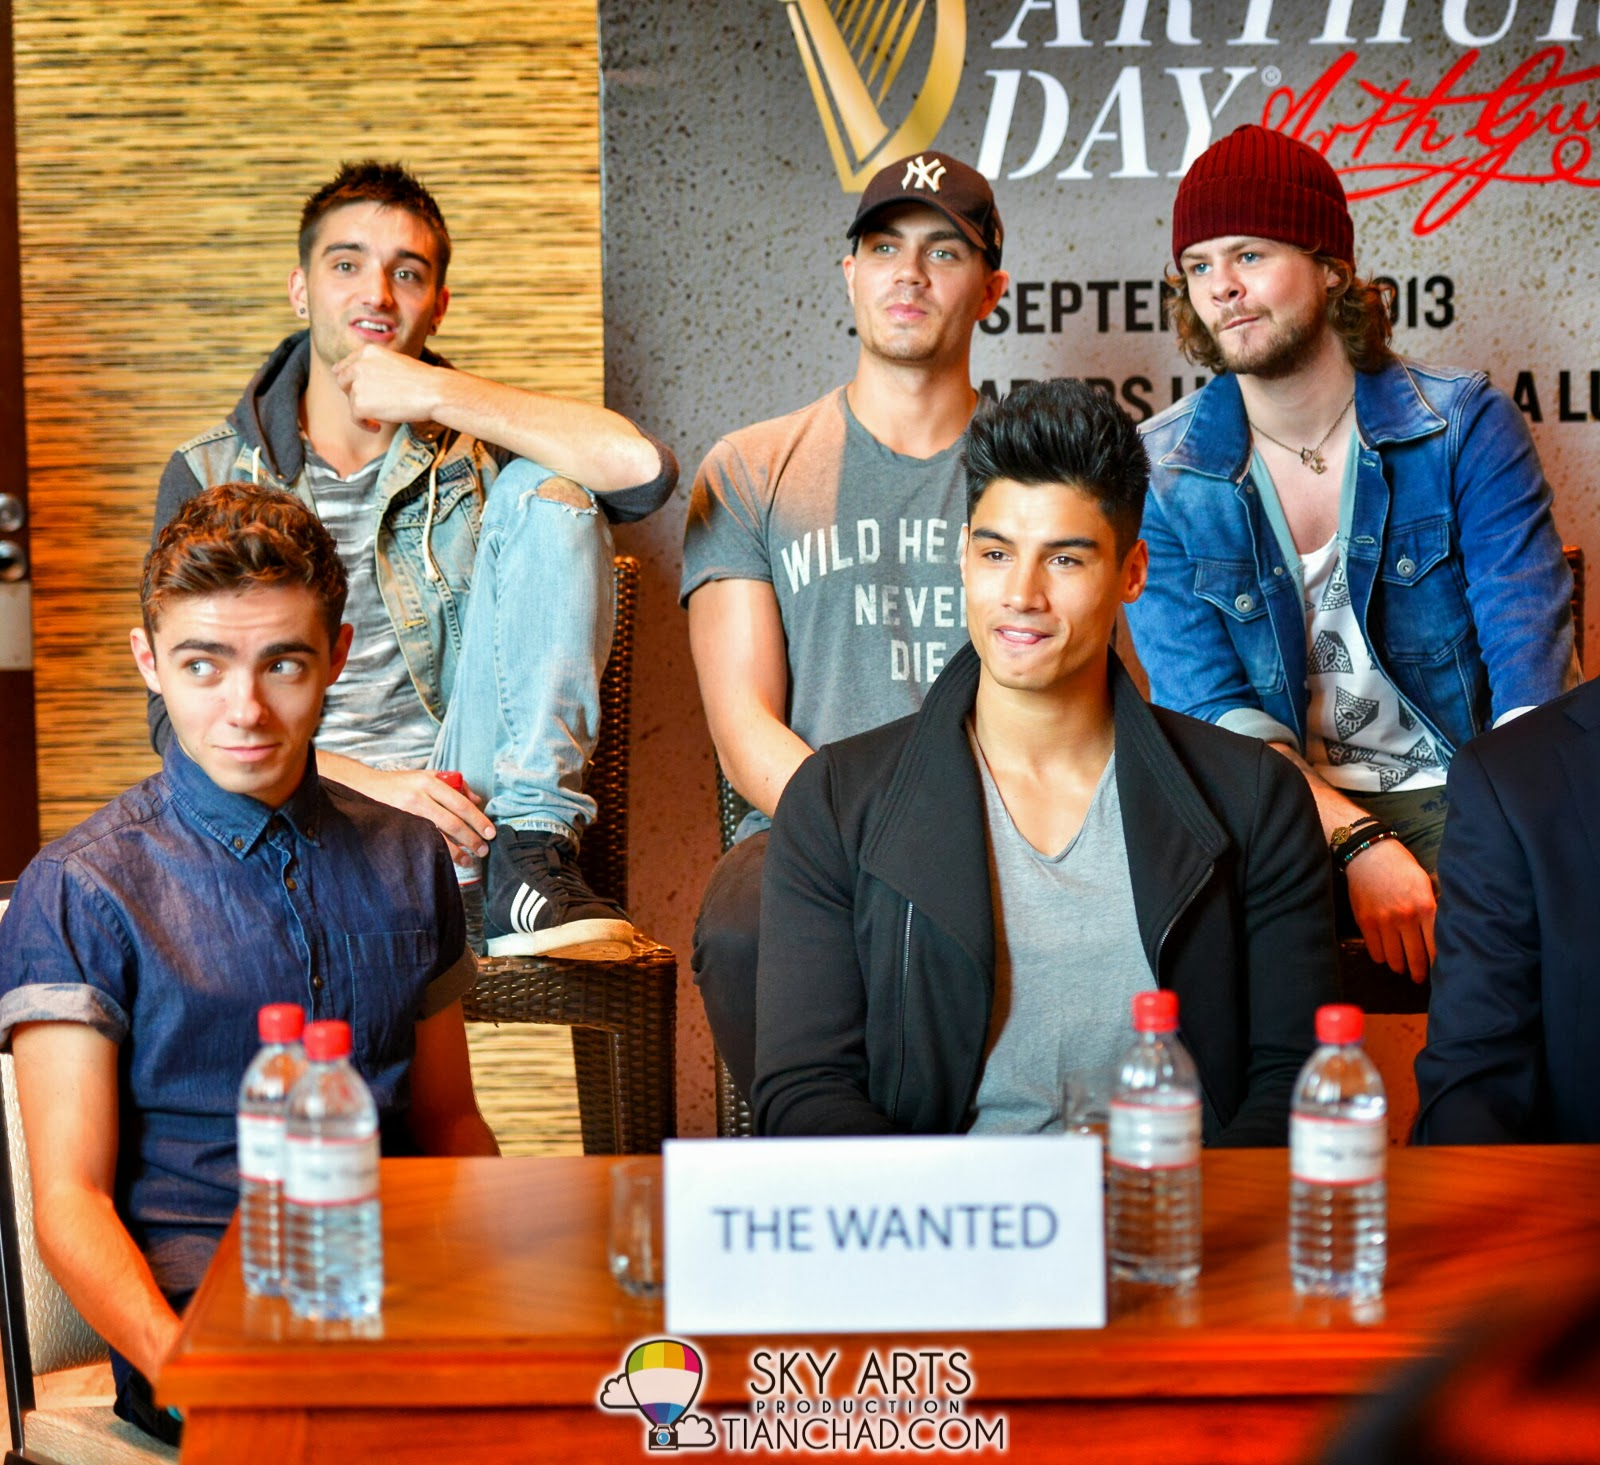 The Wanted All American Rejects Five For Fighting Arthurs Day Blue Circuit Board Wallpaper Pattern Bluecircuit Different Sitting Pose And Expression Malaysia Press Conferencearthursday2013